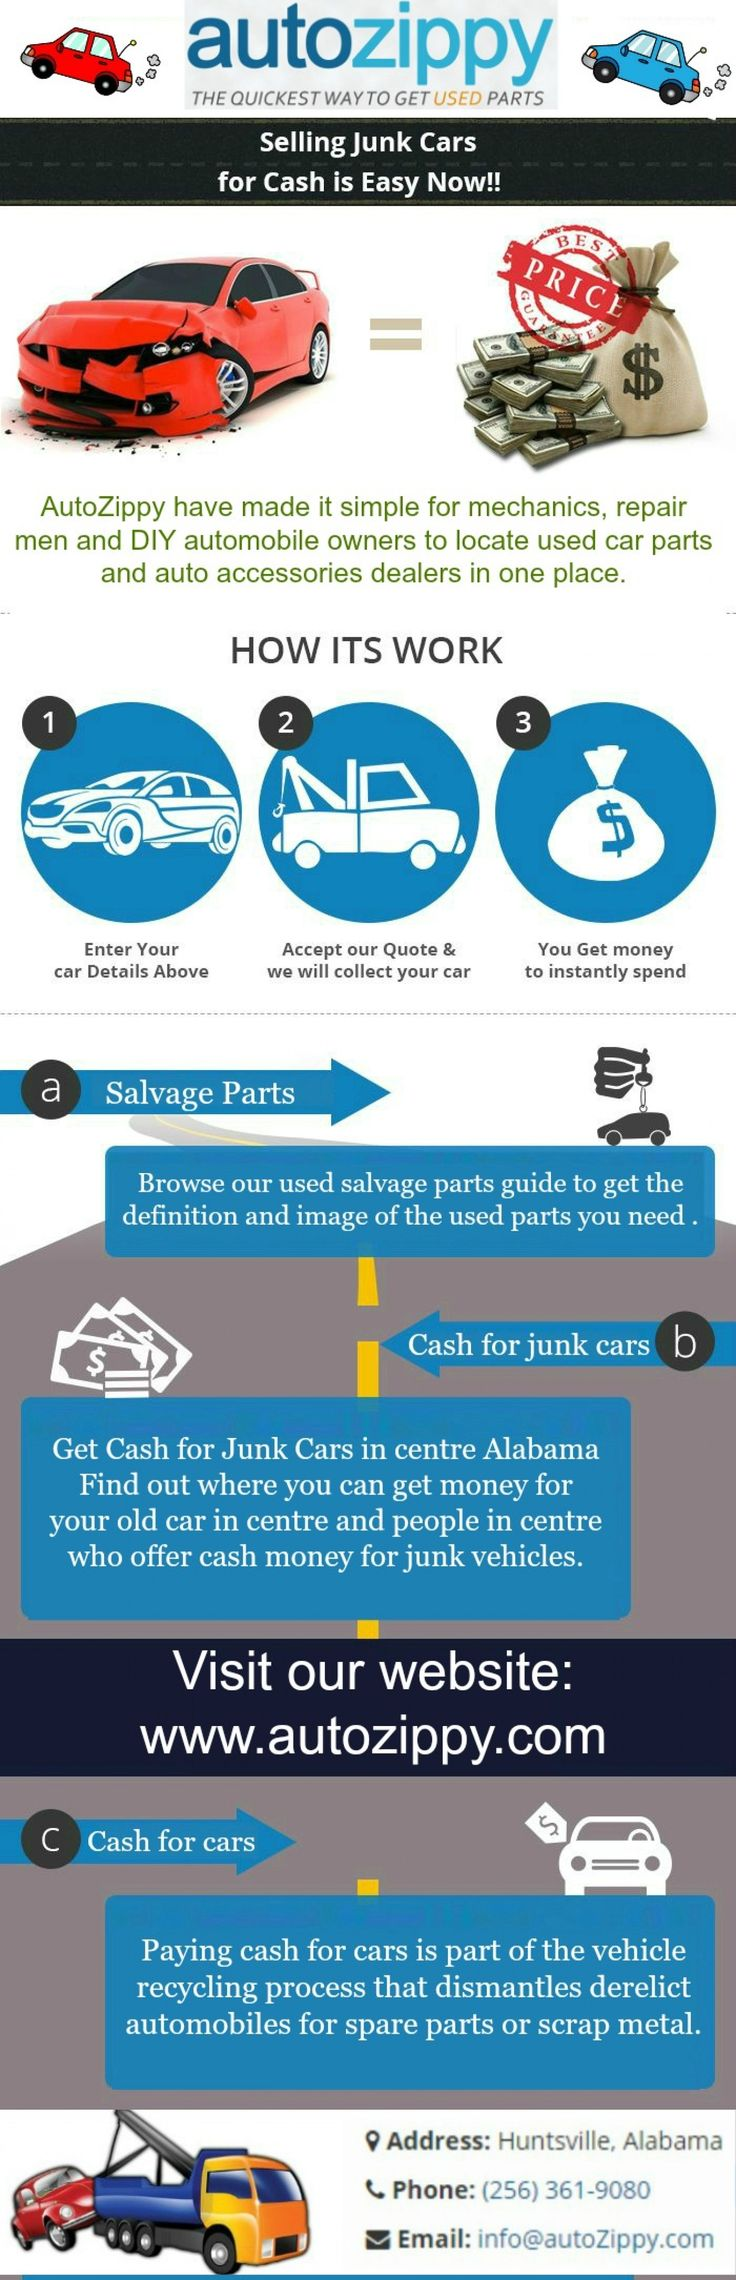 Sell Your Junk Car and Make Money | Autozippy car parts ...